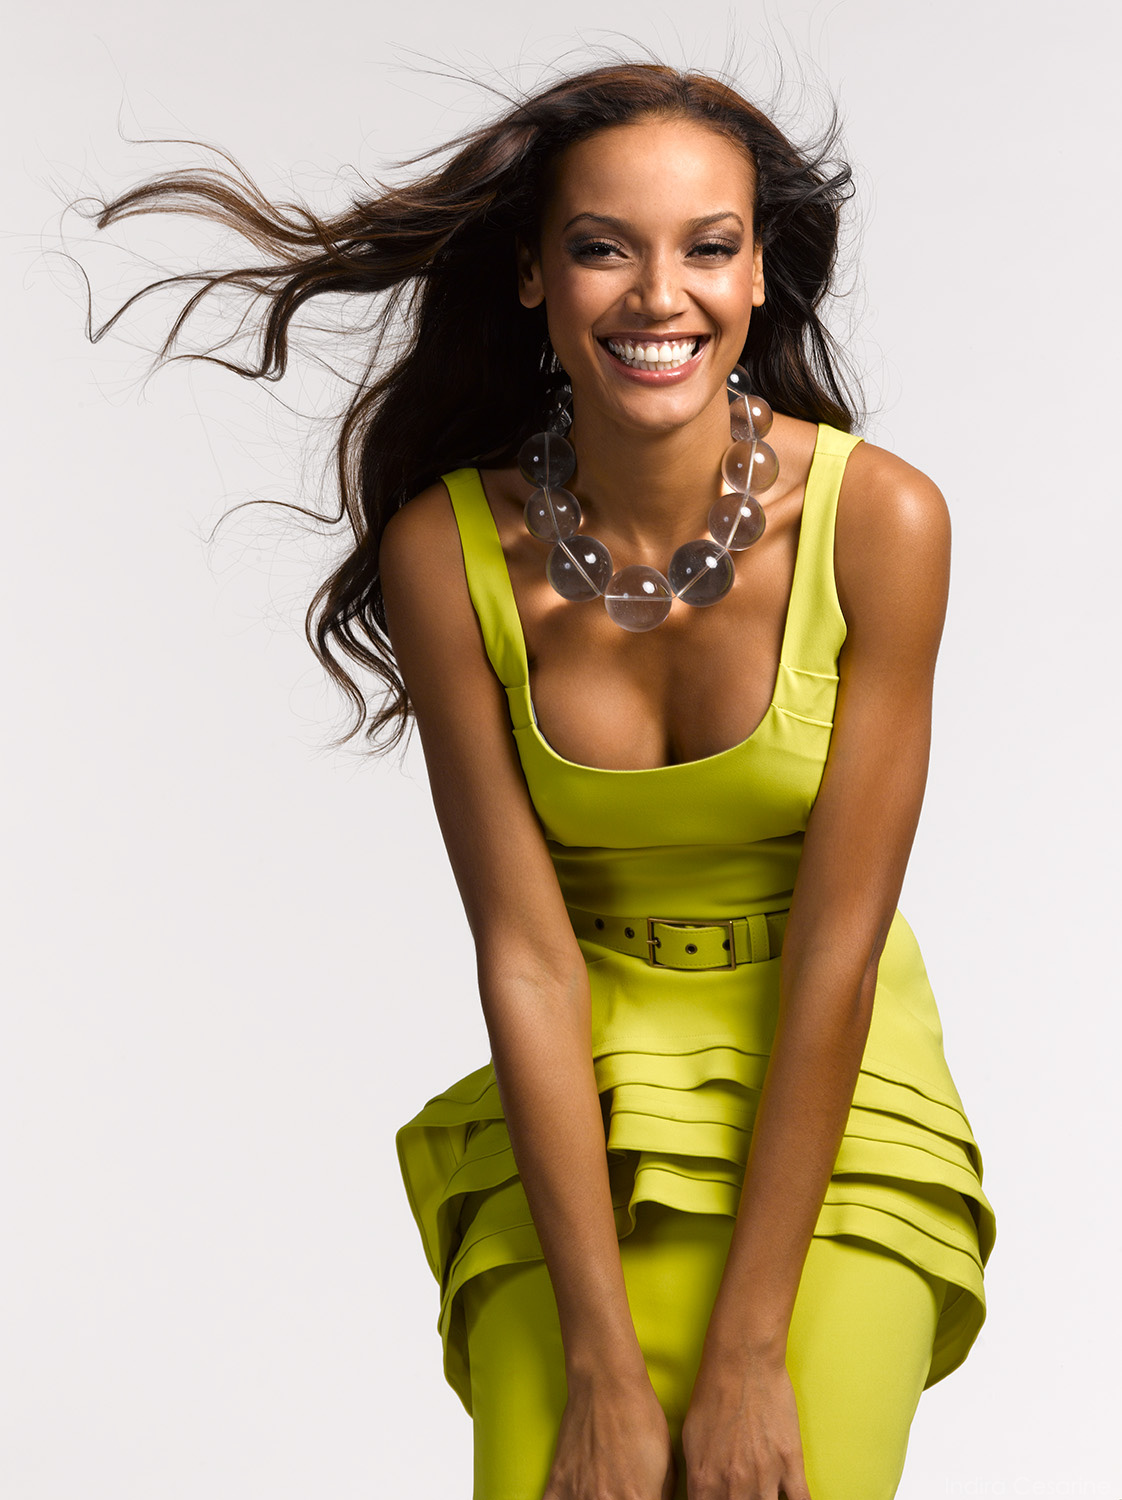 SELITA-EBANKS-Photography-by-Indira-Cesarine-022.jpg